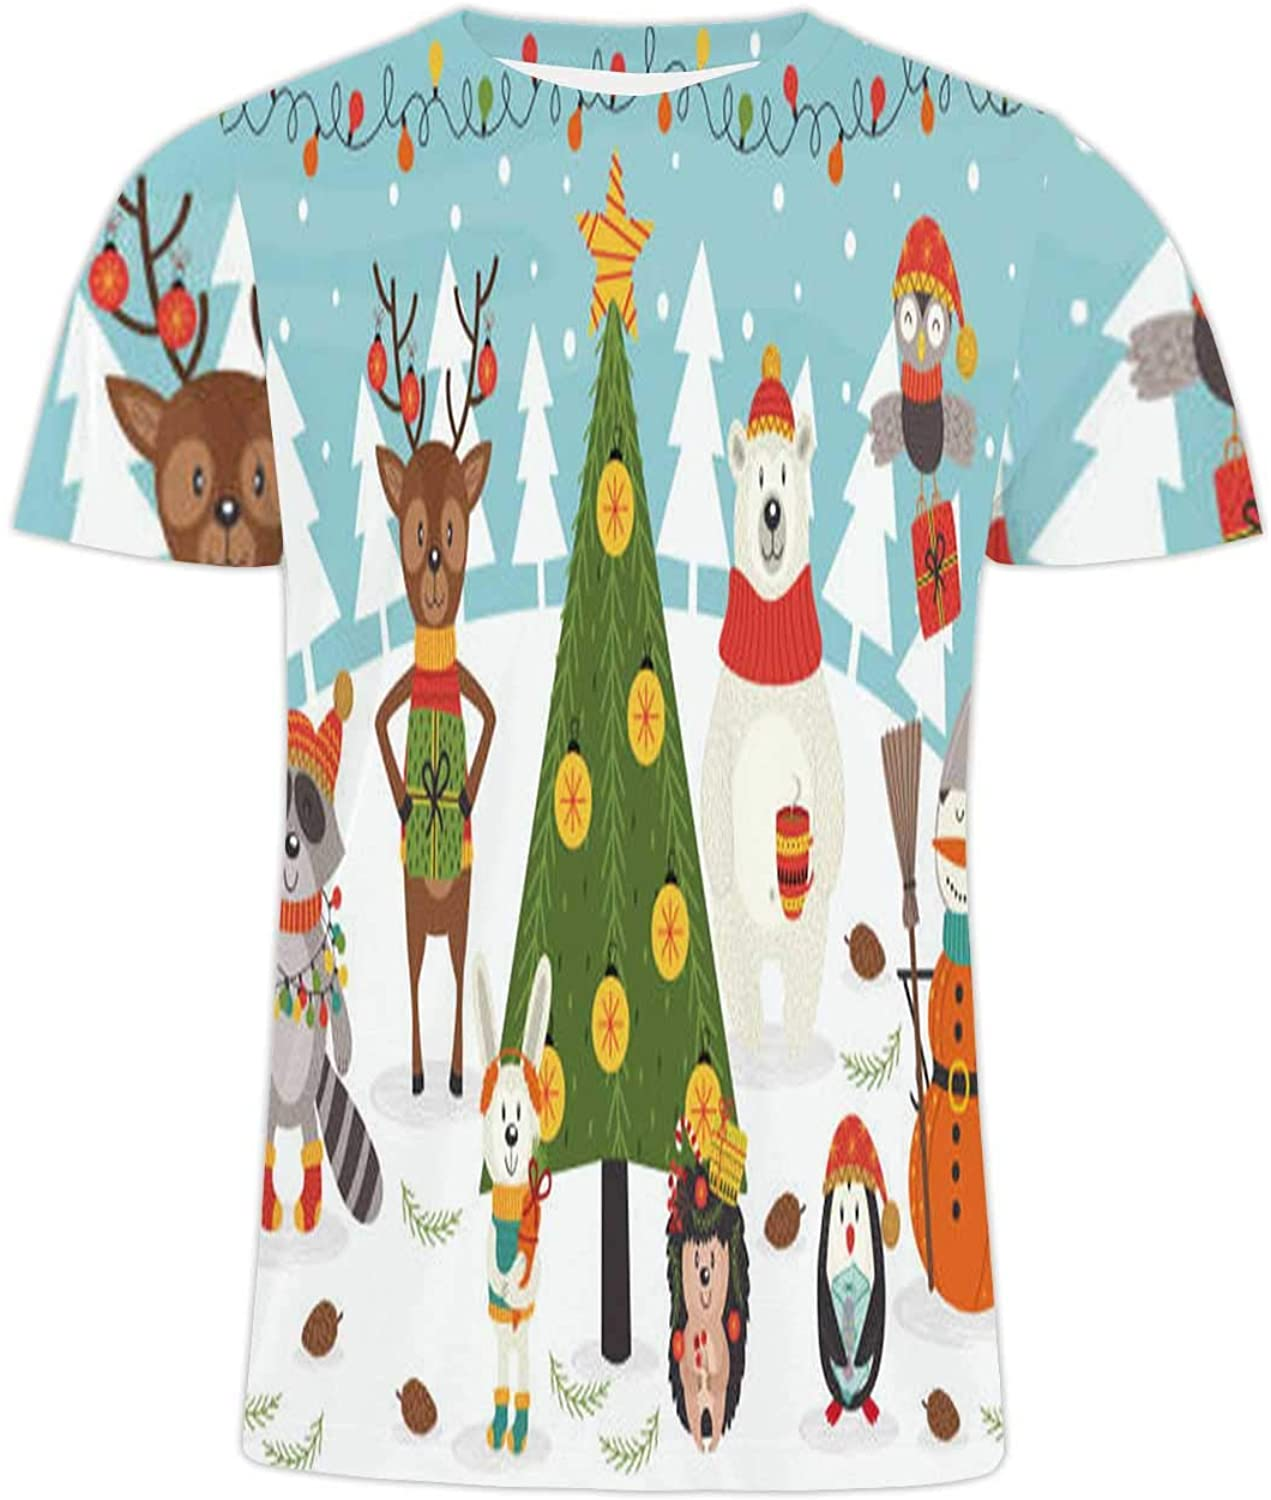 Christmas Banner.Vector Hand Drawn - with Pine Cone,Premiun Tees - Stlish Print T-Shirts for Men/Women Evergreen M